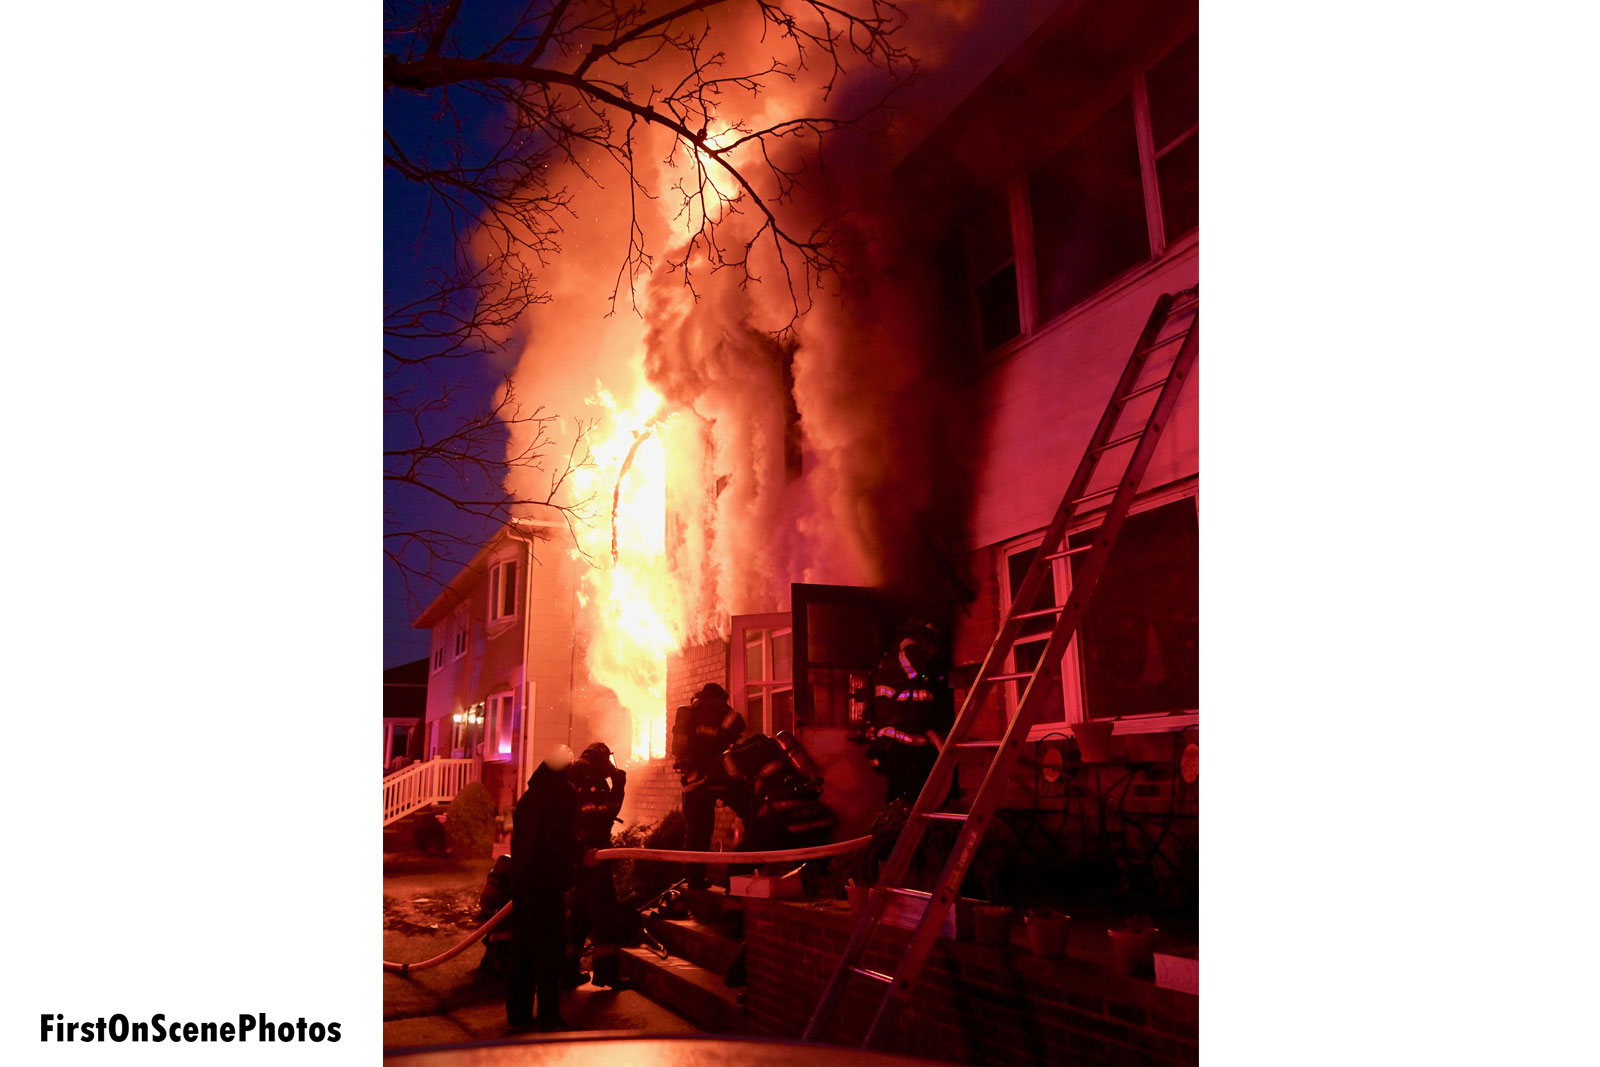 Firefighters put a line through the front door as flames vent from the side of the home